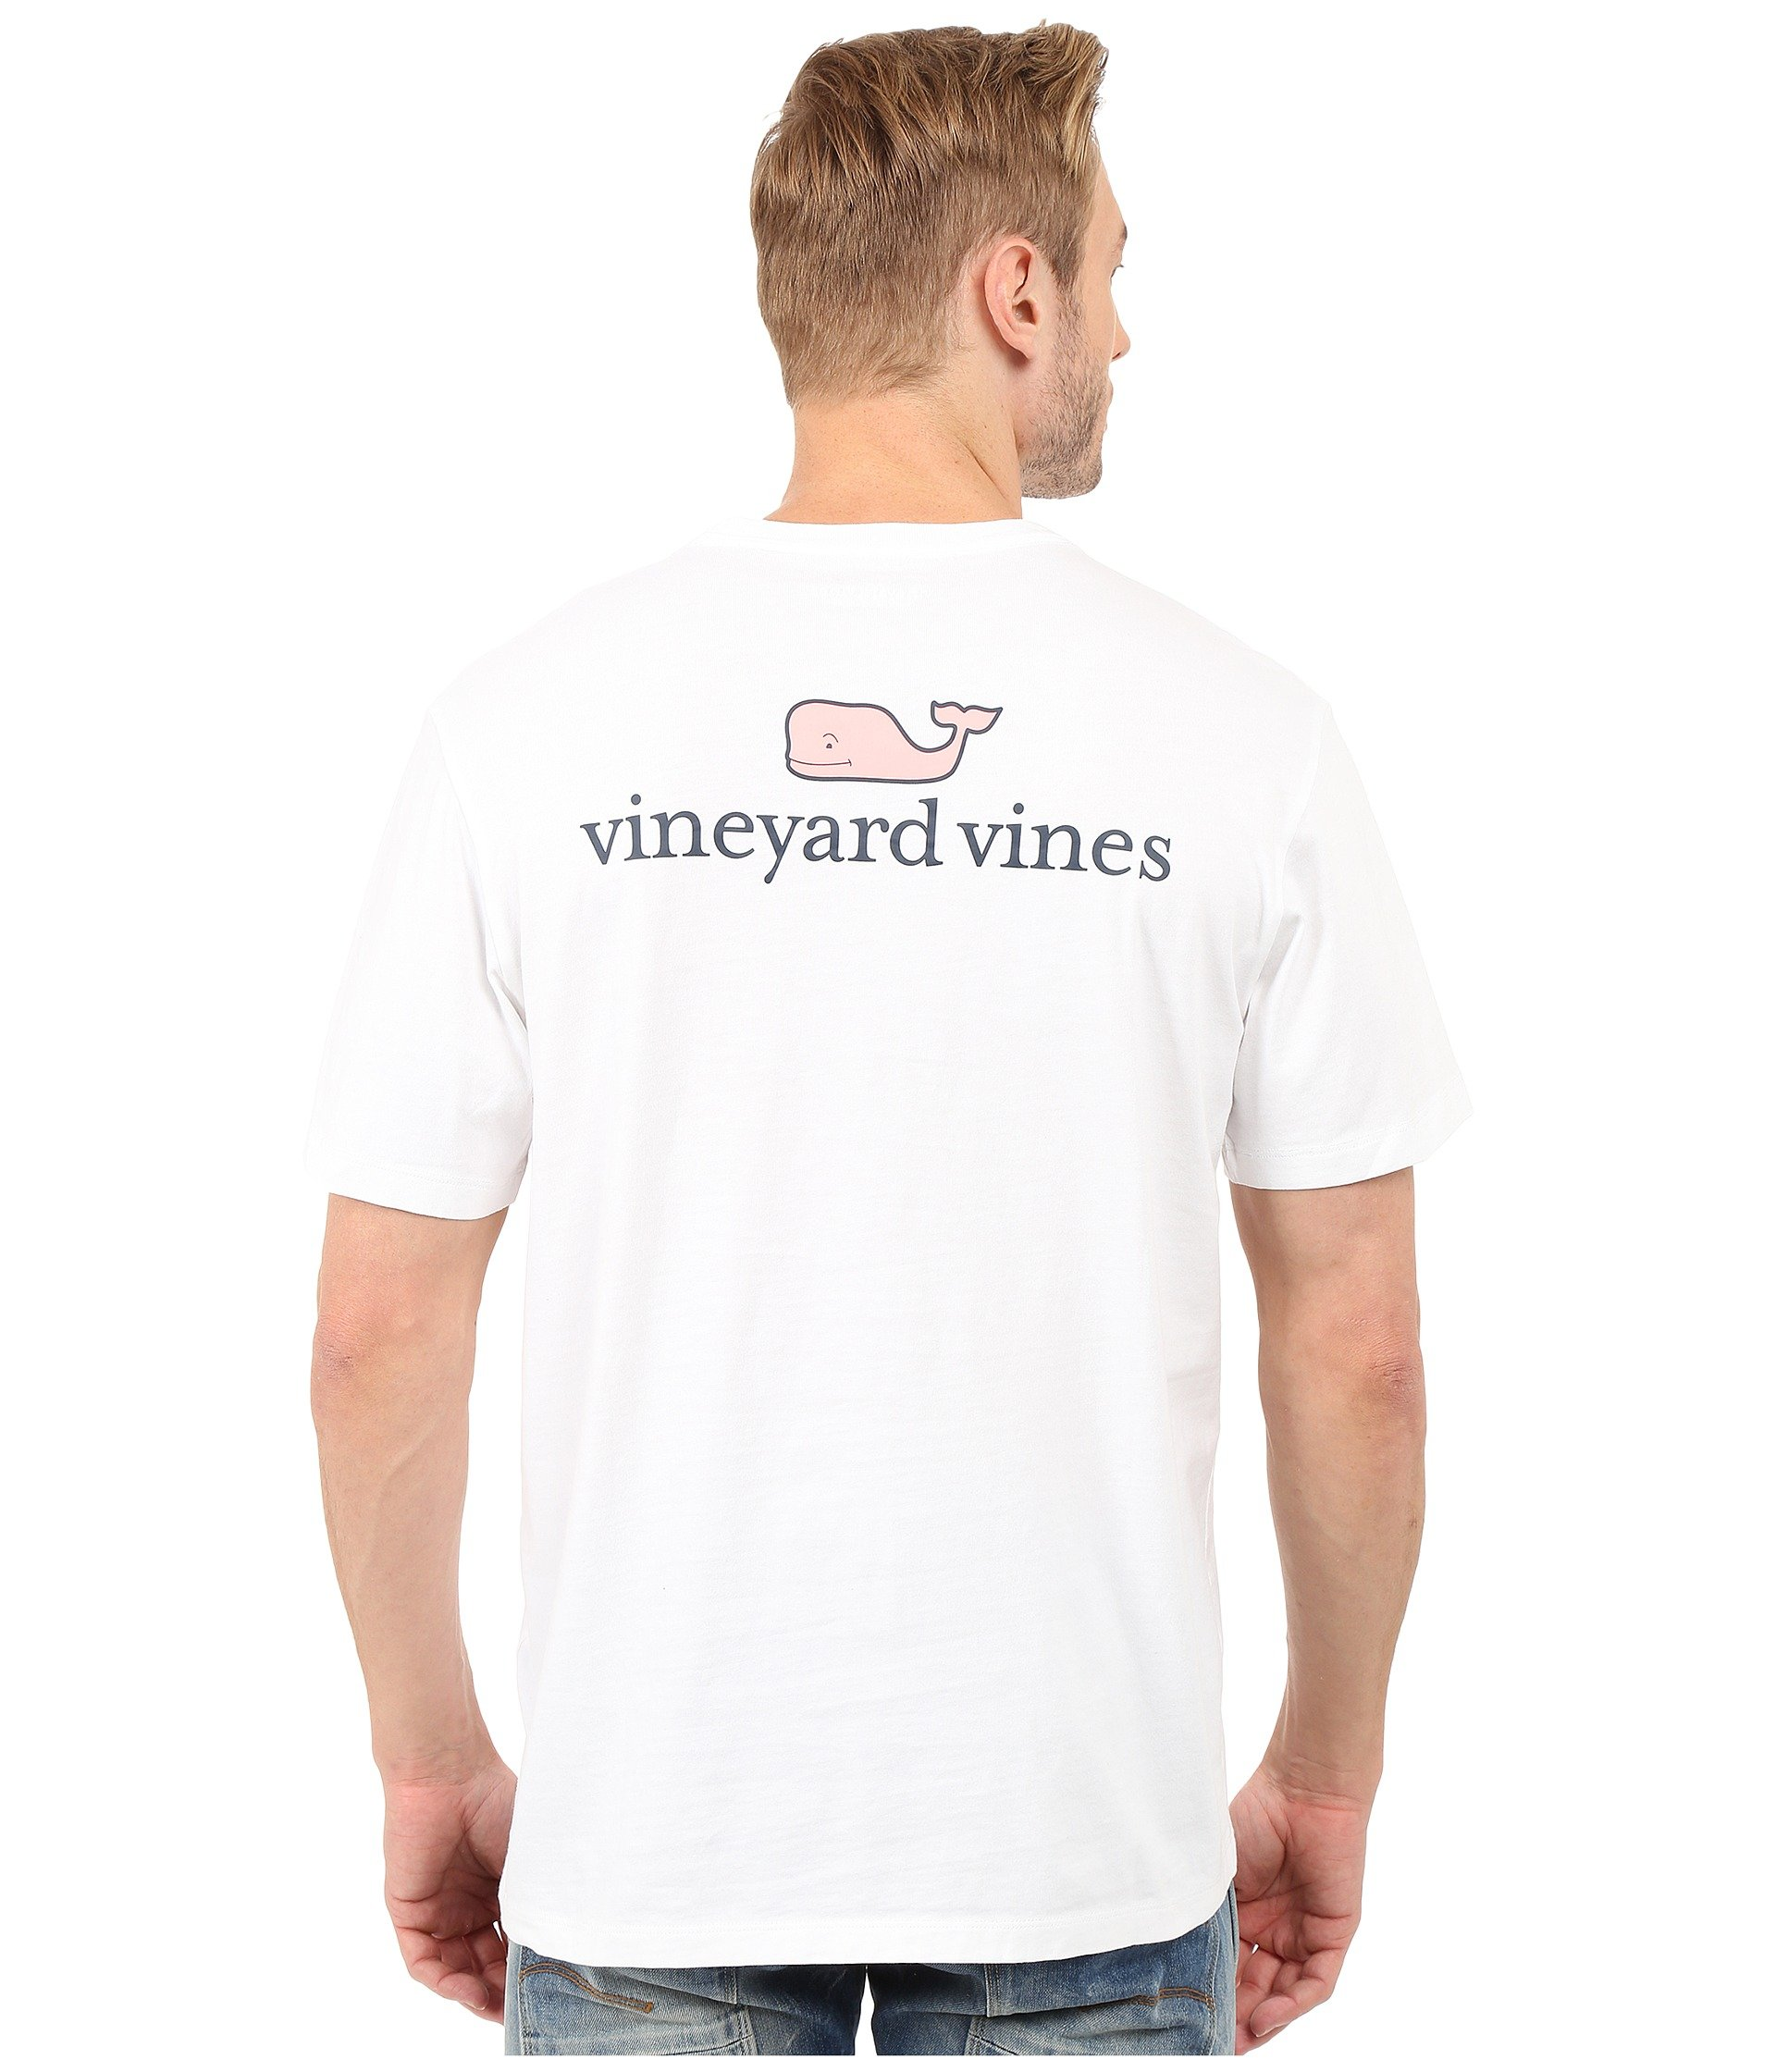 Cap T shirt Vv Logo Graphic White Vines Vineyard q0Sw11